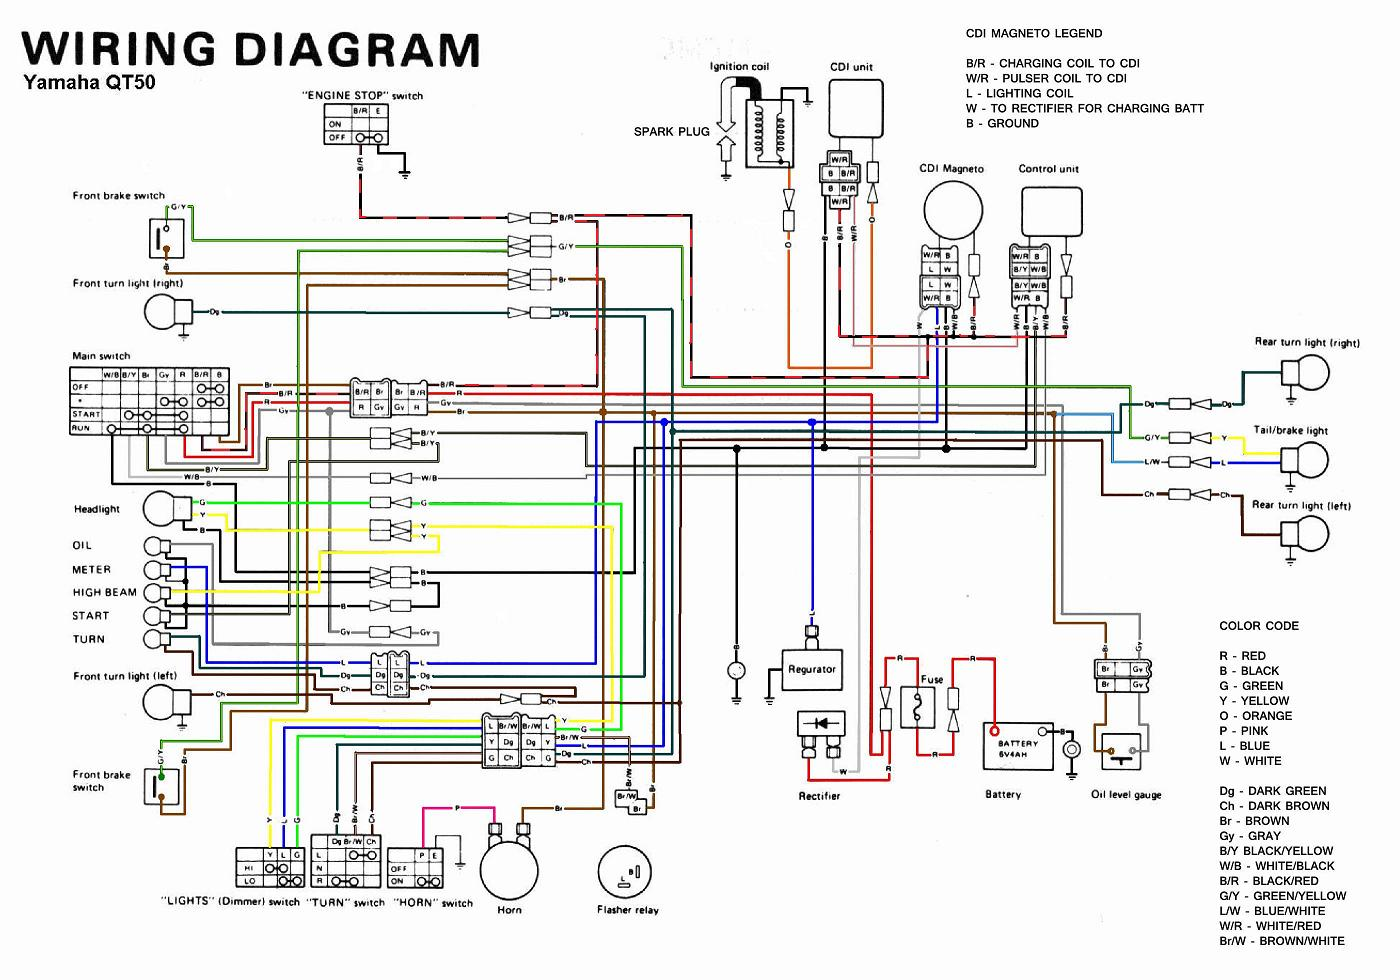 Yamaha QT50 Wiring Diagram – Yamaha QT50 Luvin And Other Nopeds